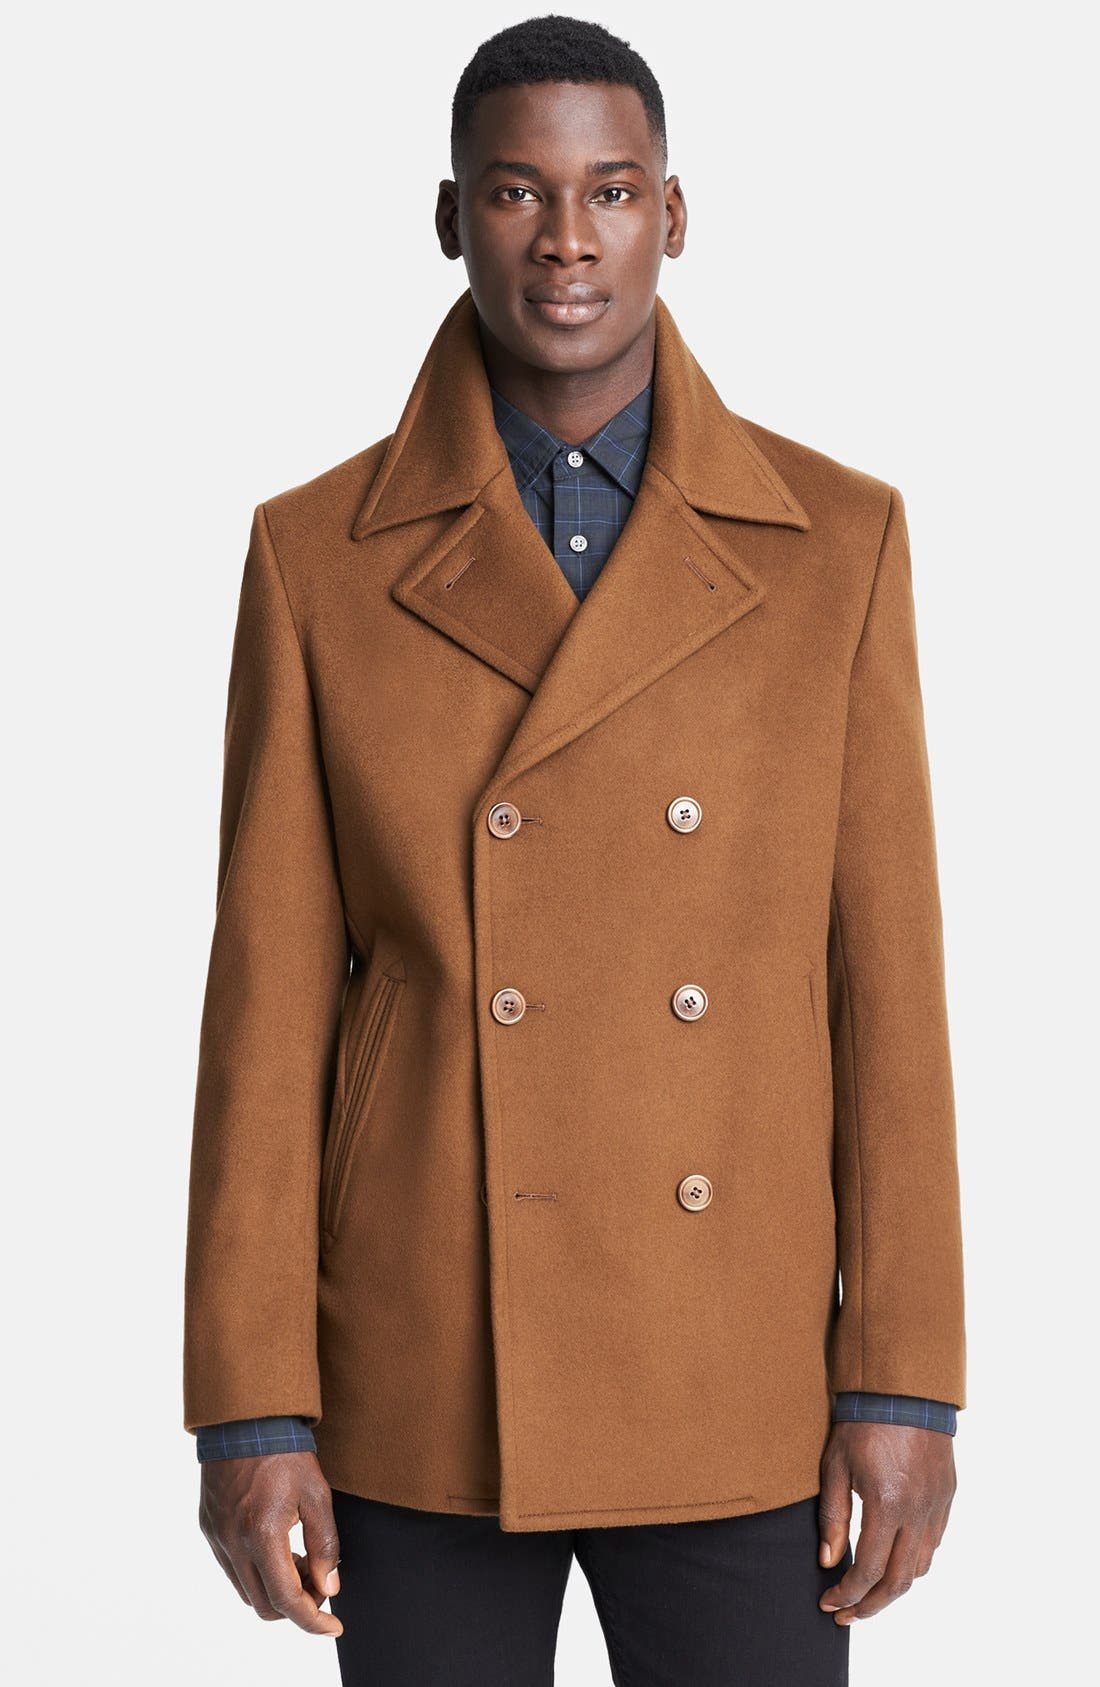 JOHN VARVATOS STAR USA, 'Perkins' Peacoat, Main thumbnail 1, color, 242